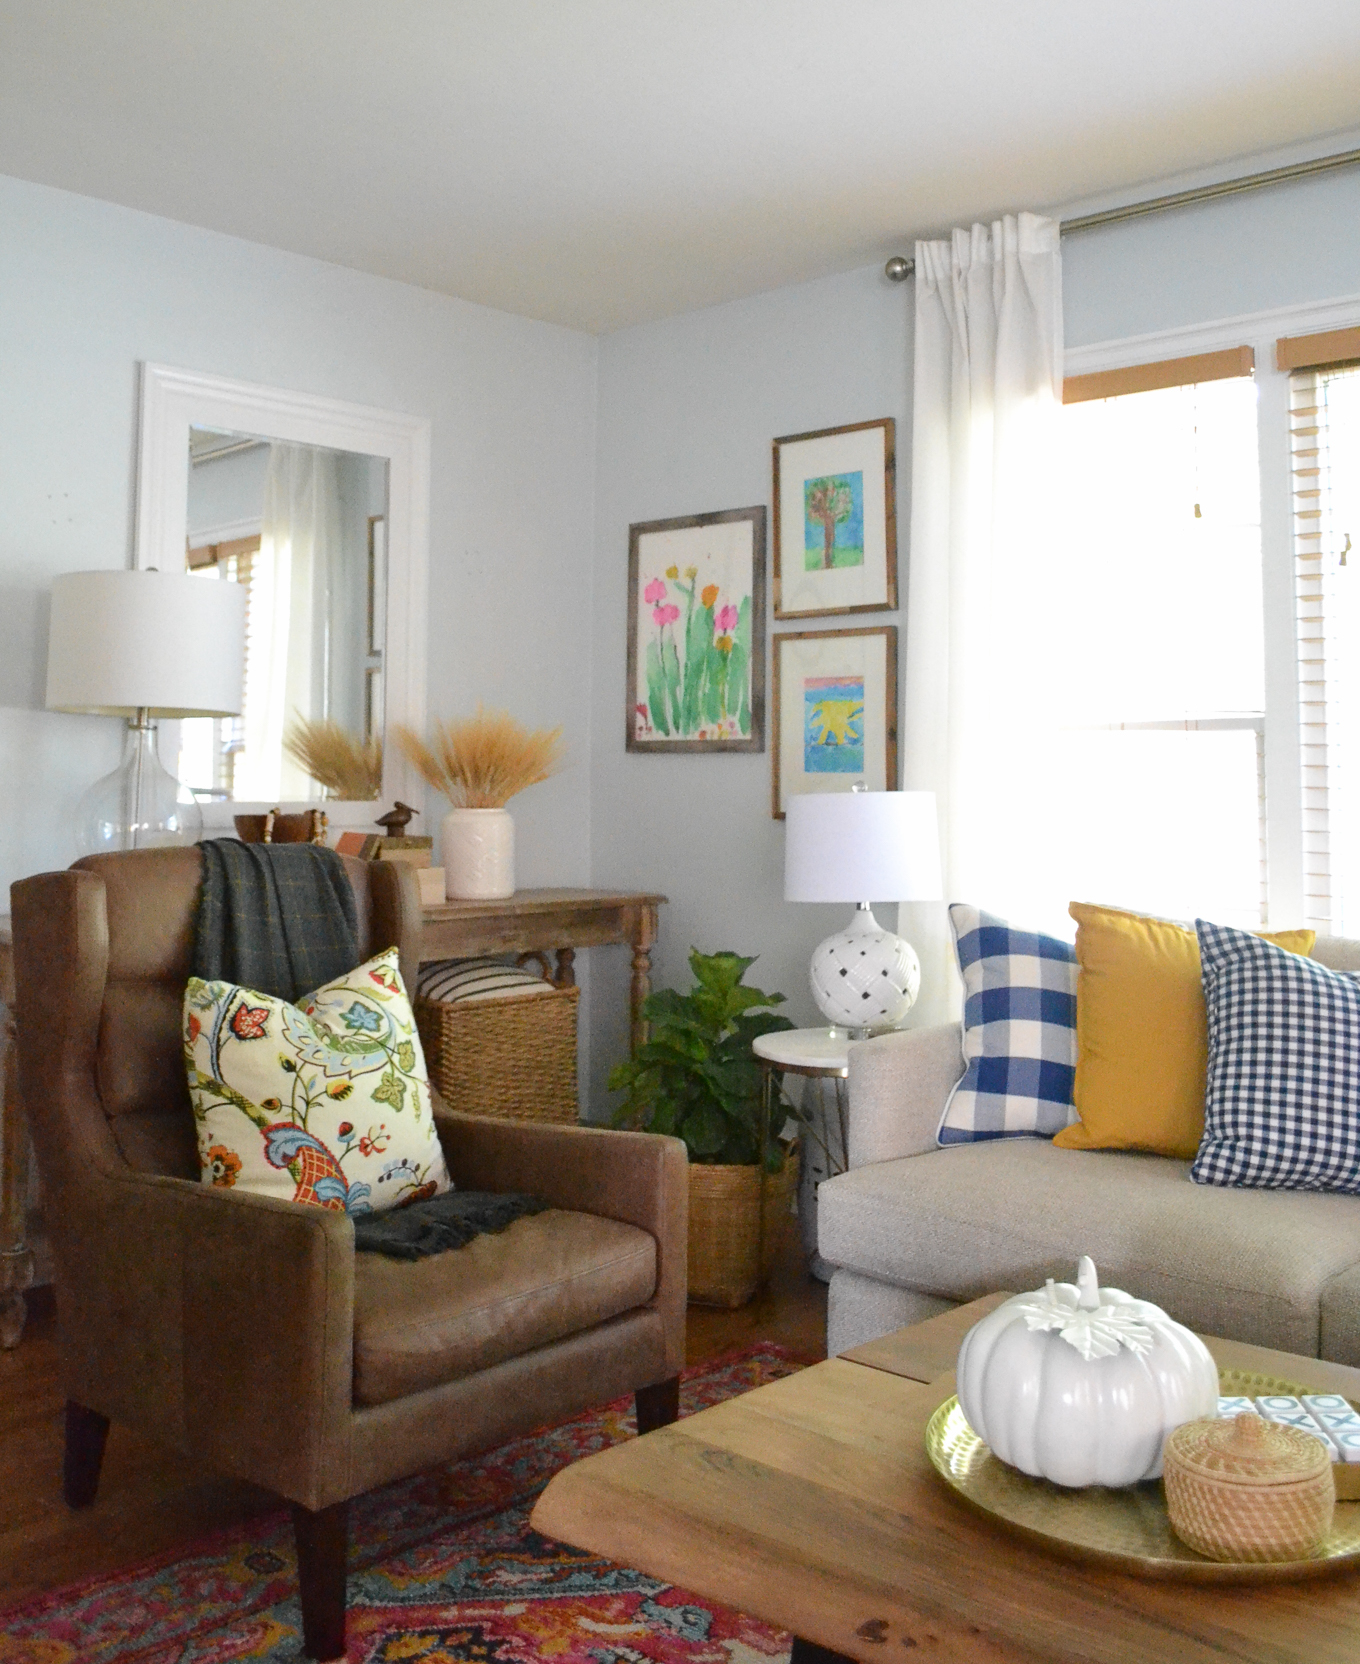 Living Room Home Decorating Ideas: Living Room Decorating Ideas For Fall